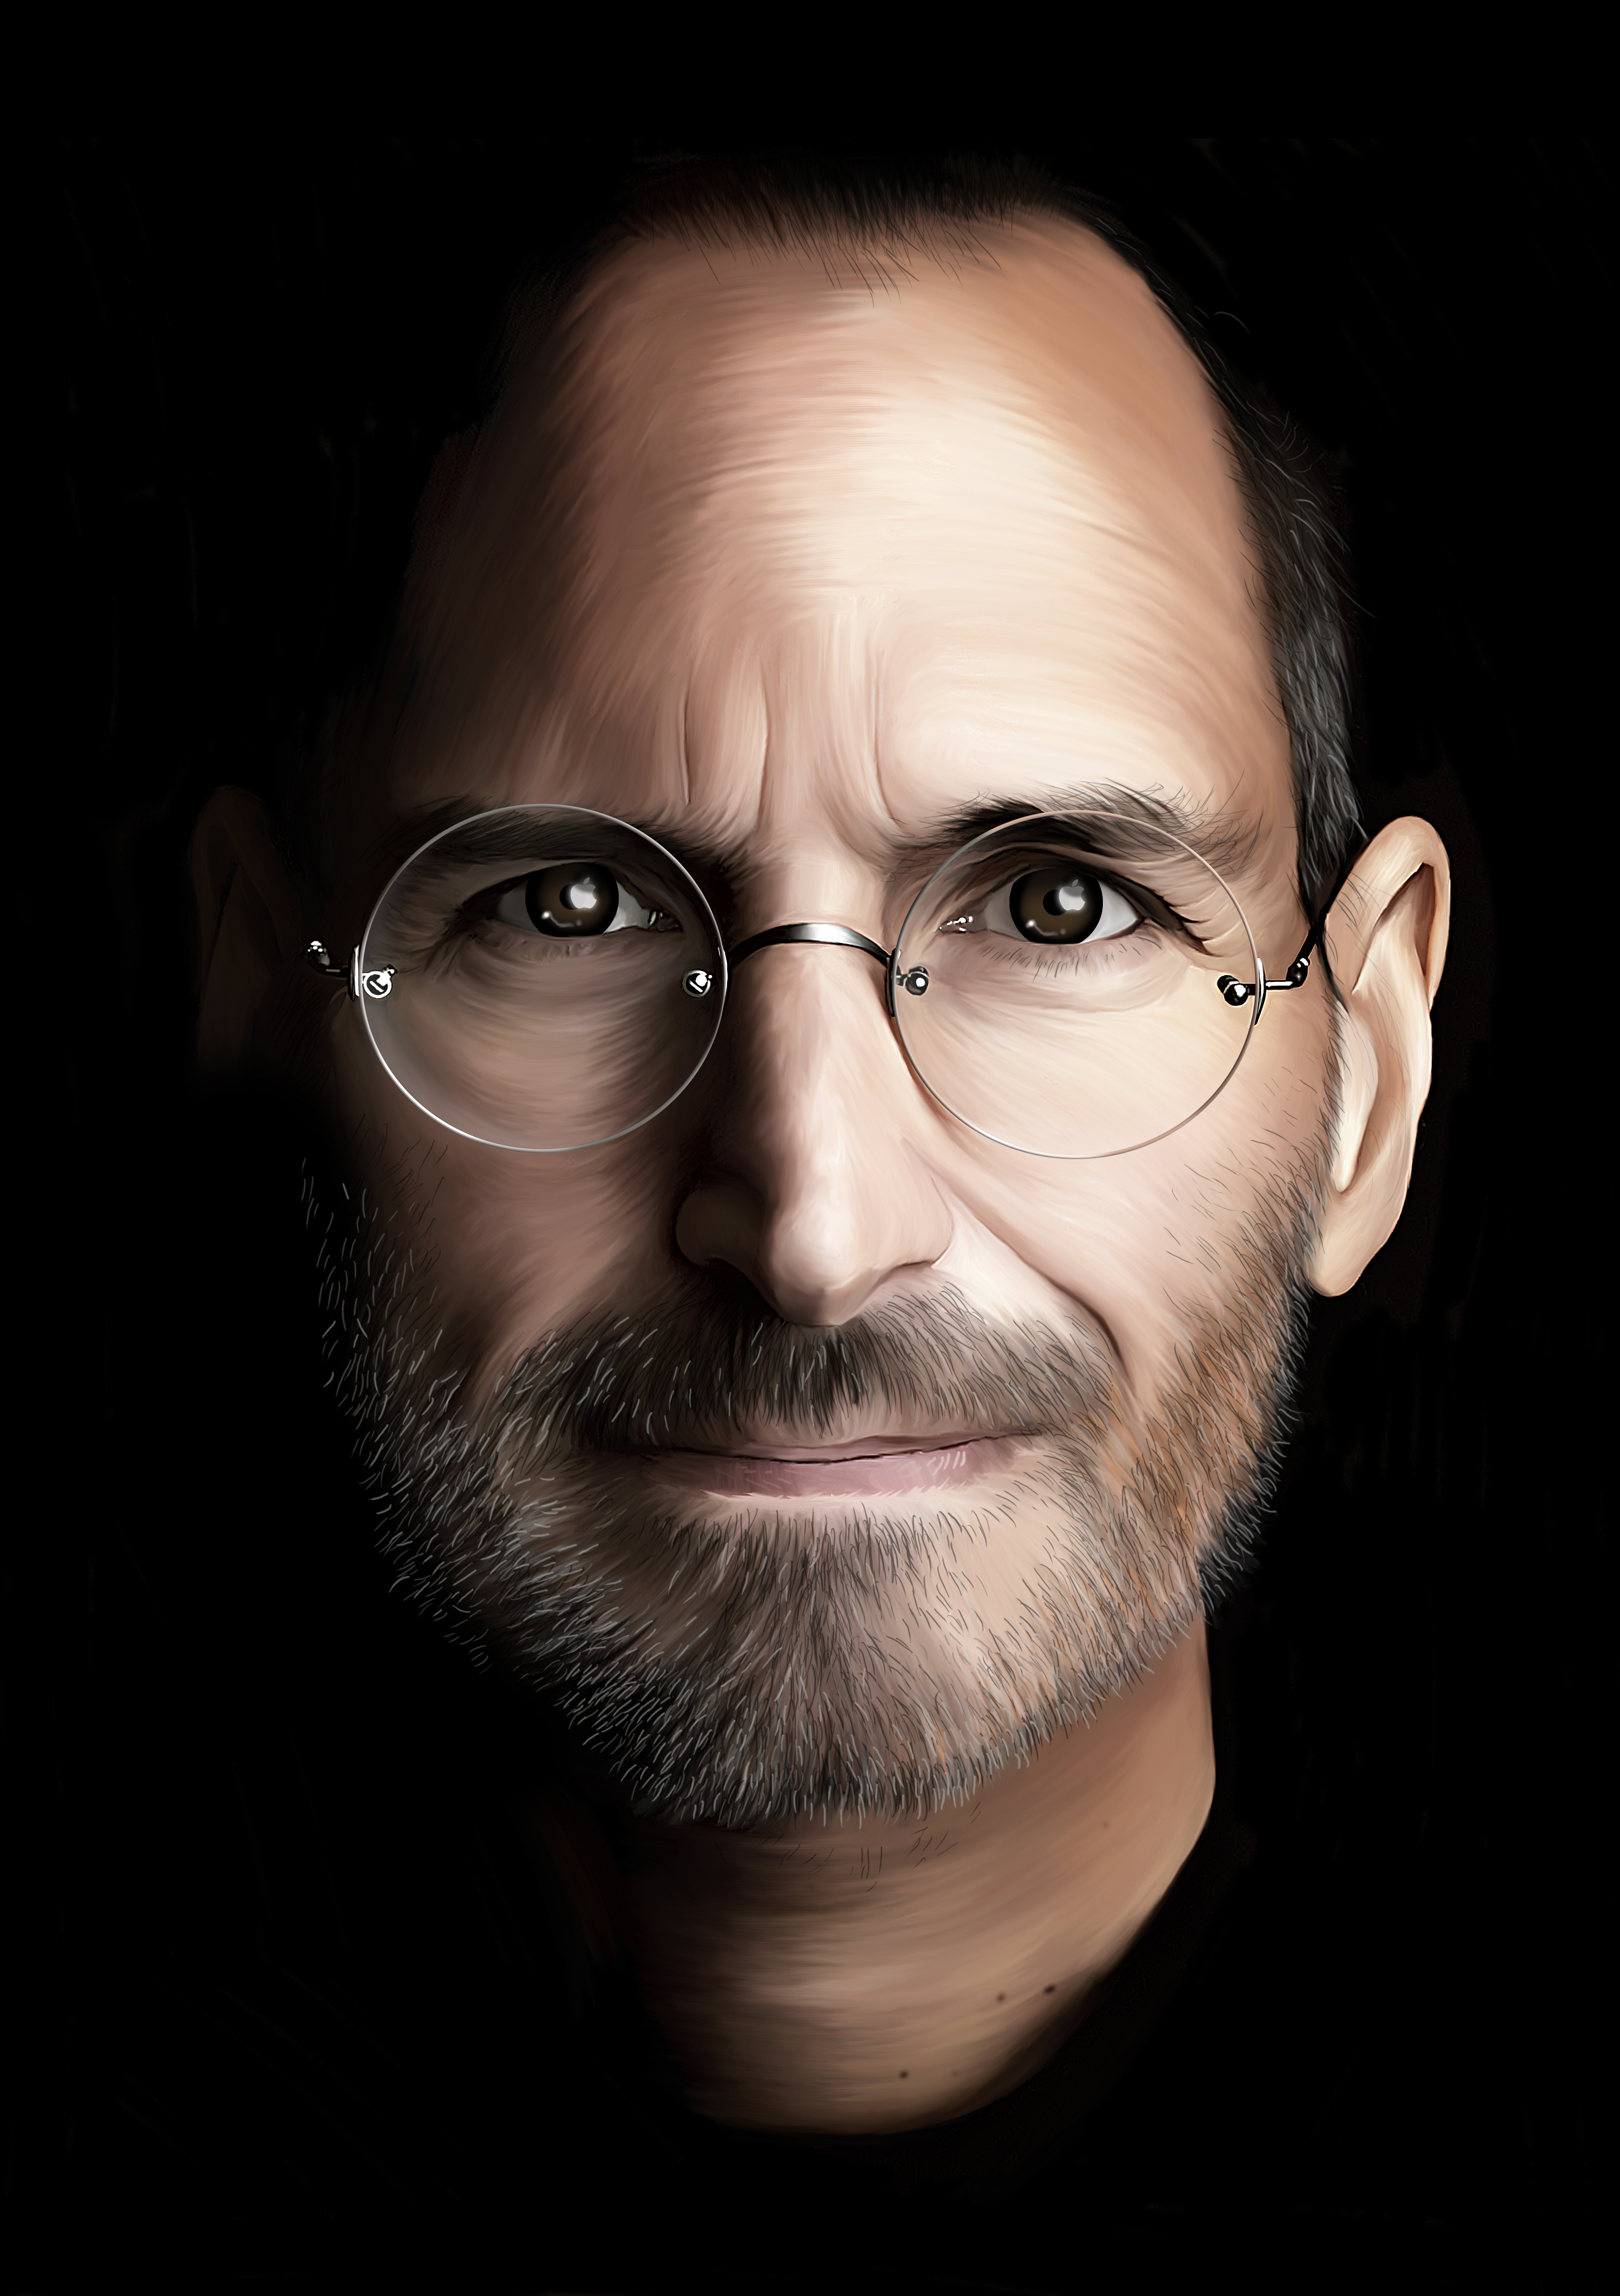 visionary steve jobs My first memory of steve jobs is from high school, when he was a senior and i was a freshman i went to prospect high but showed up weekly at homestead h.